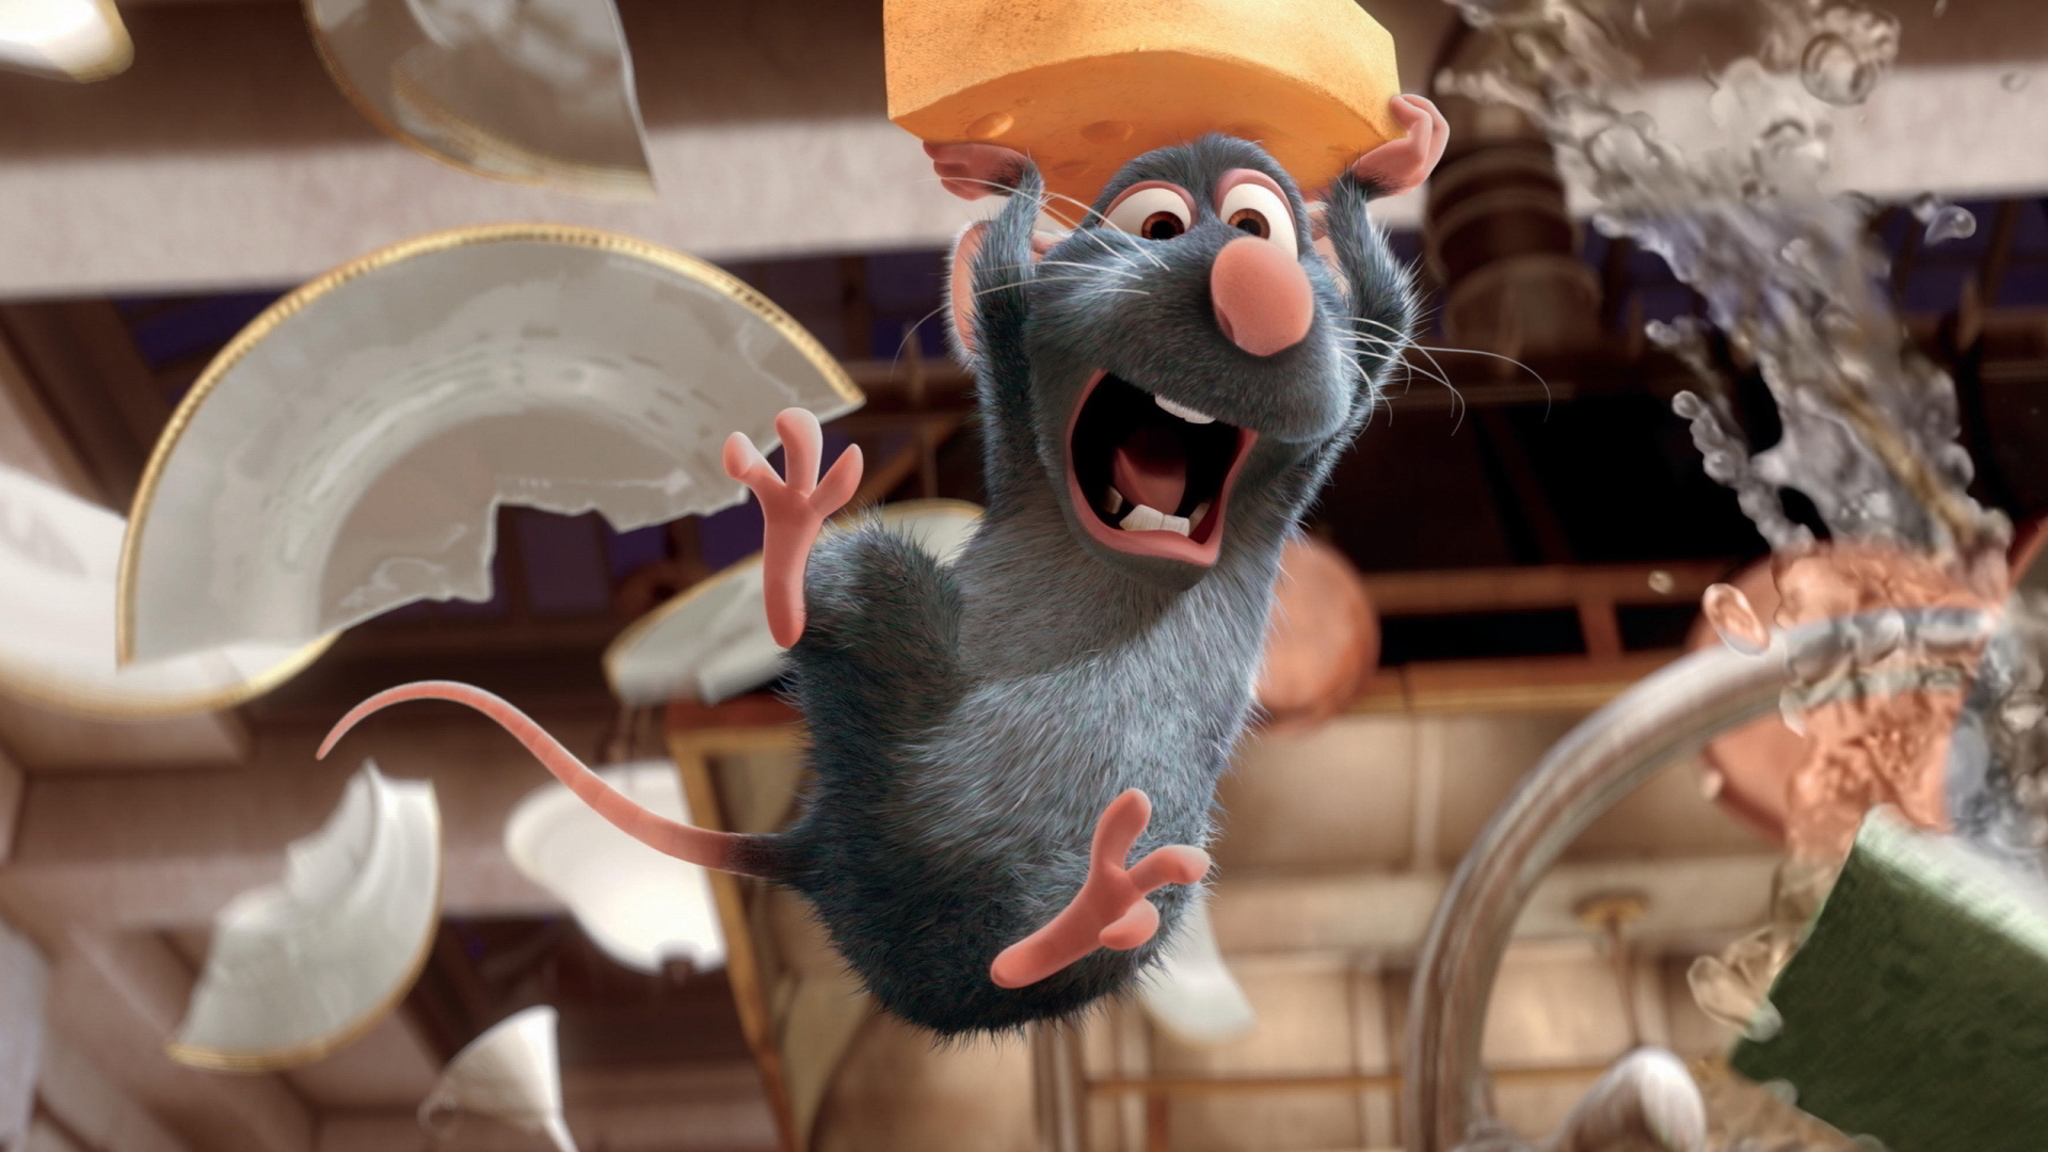 Ratatouille - Movies - The New York Times